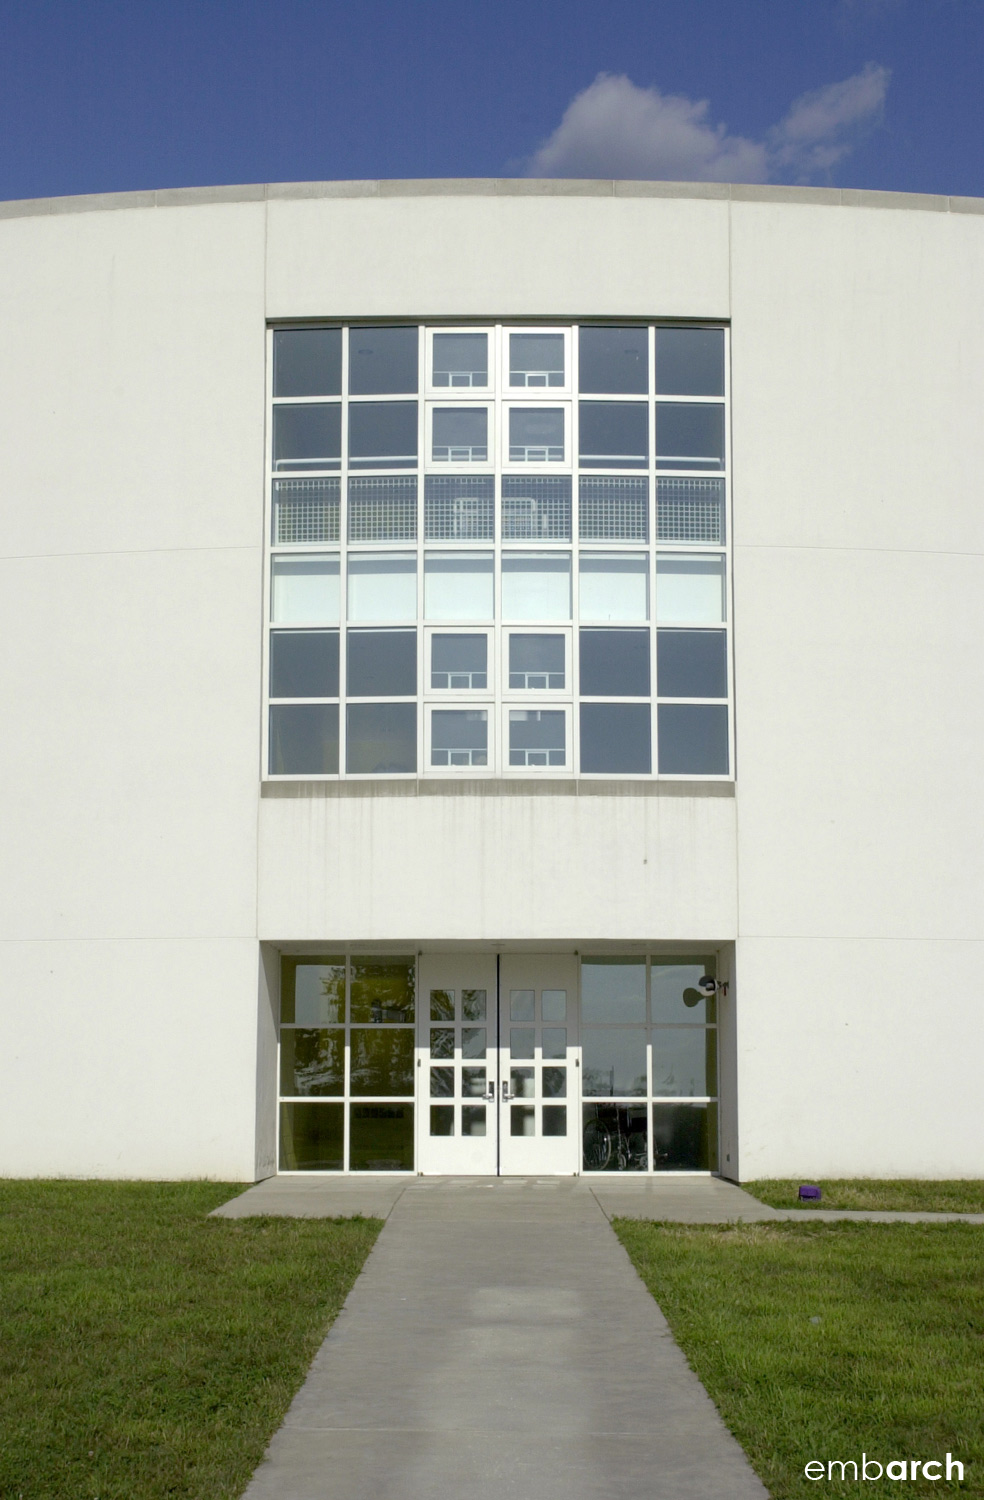 Clifty Creek Elementary School - exterior detail